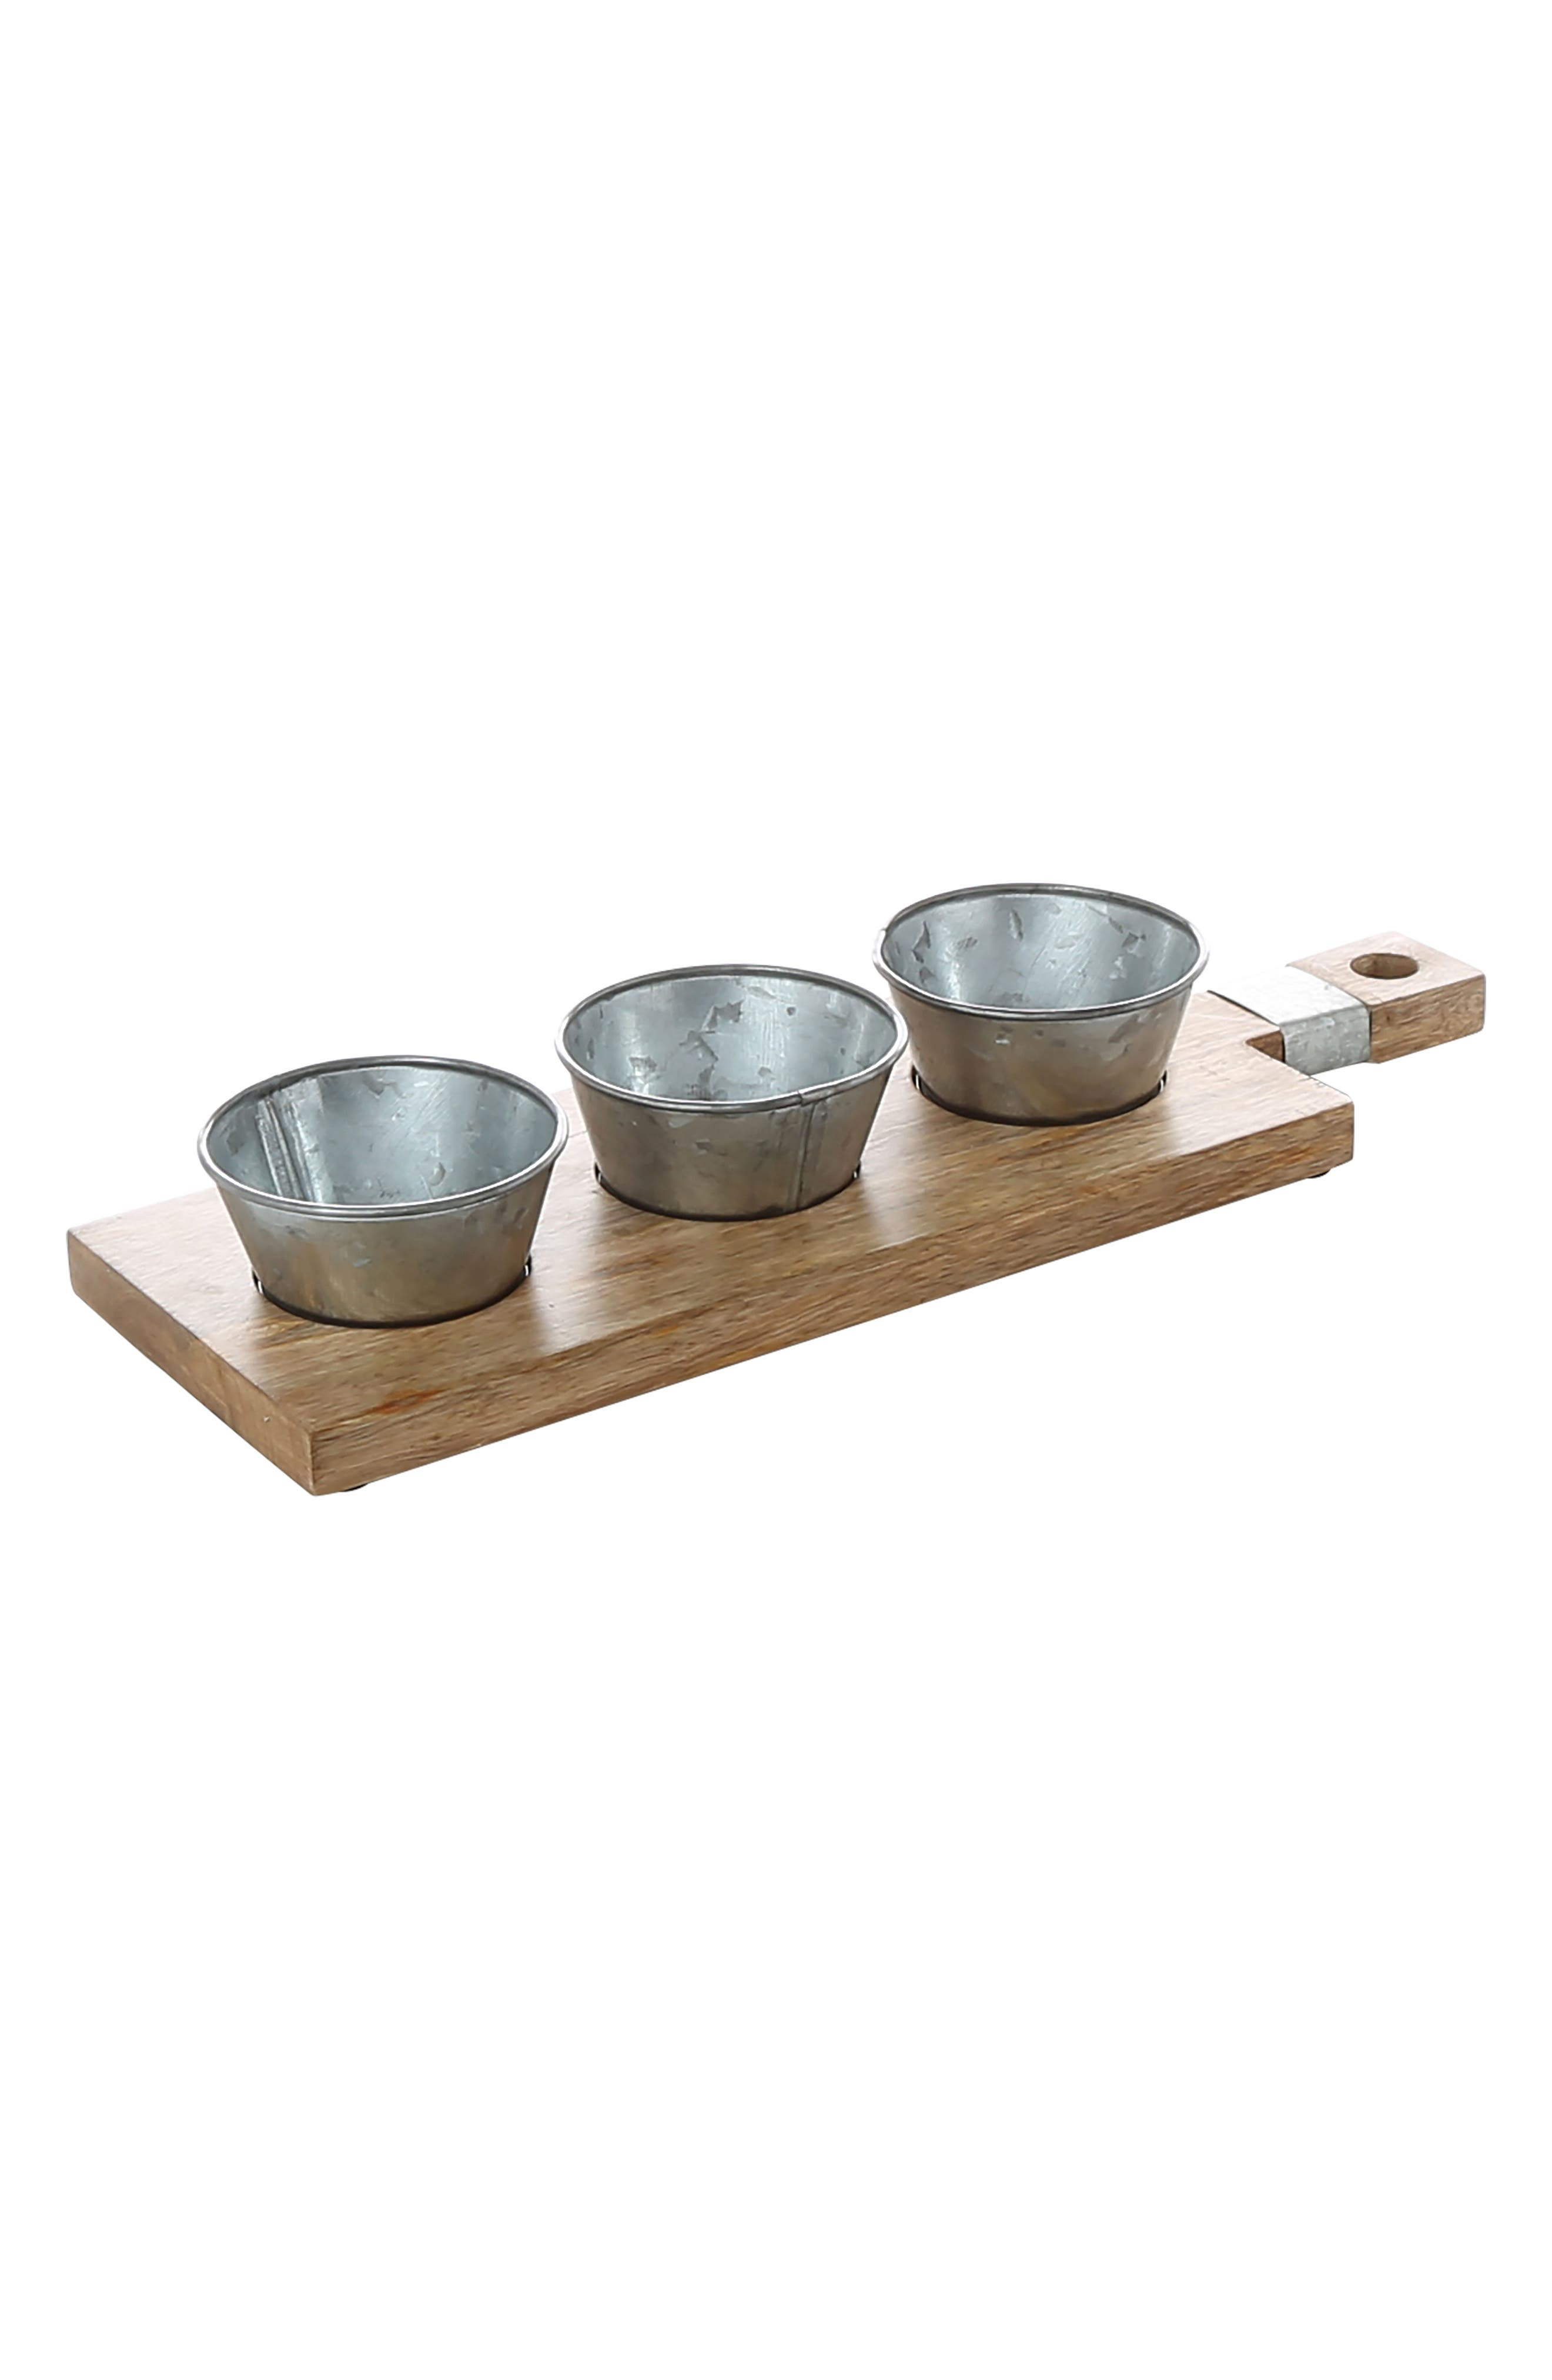 Alternate Image 1 Selected - Thirstystone Condiment Tray with Galvanized Bowls